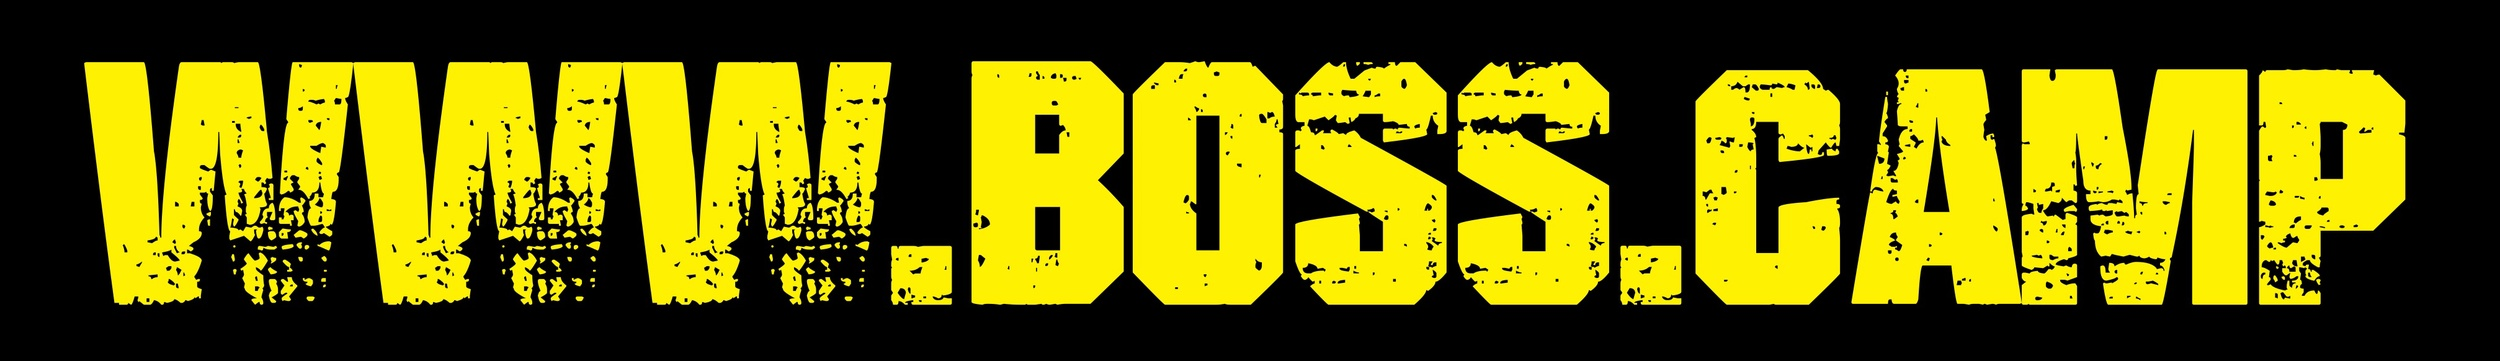 Making the step up to boss? Find out how to make work work with www.boss.camp Jpeg